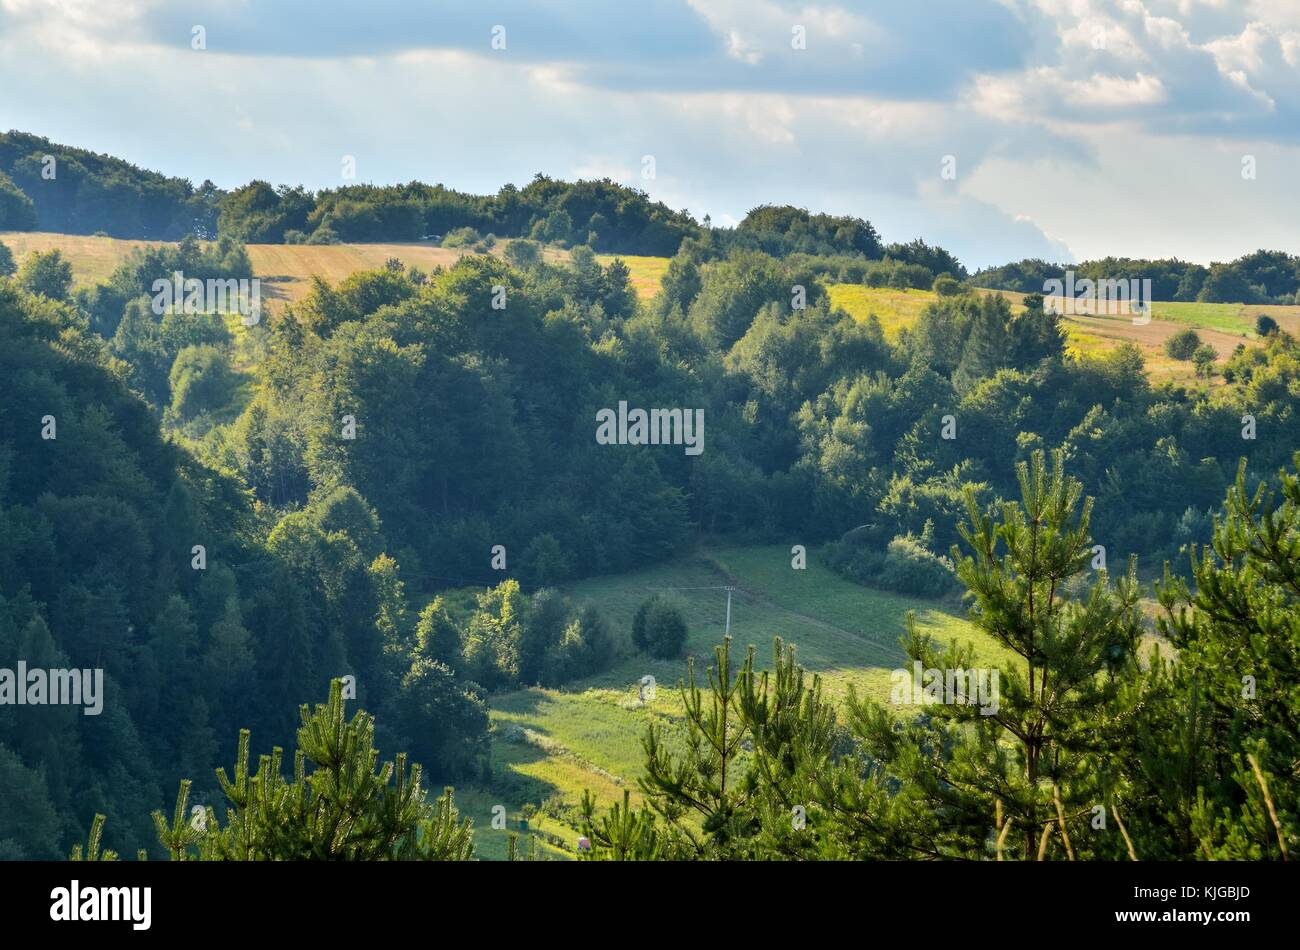 Natural green summer landscape. Beautiful Jurassic valley in Poland. - Stock Image